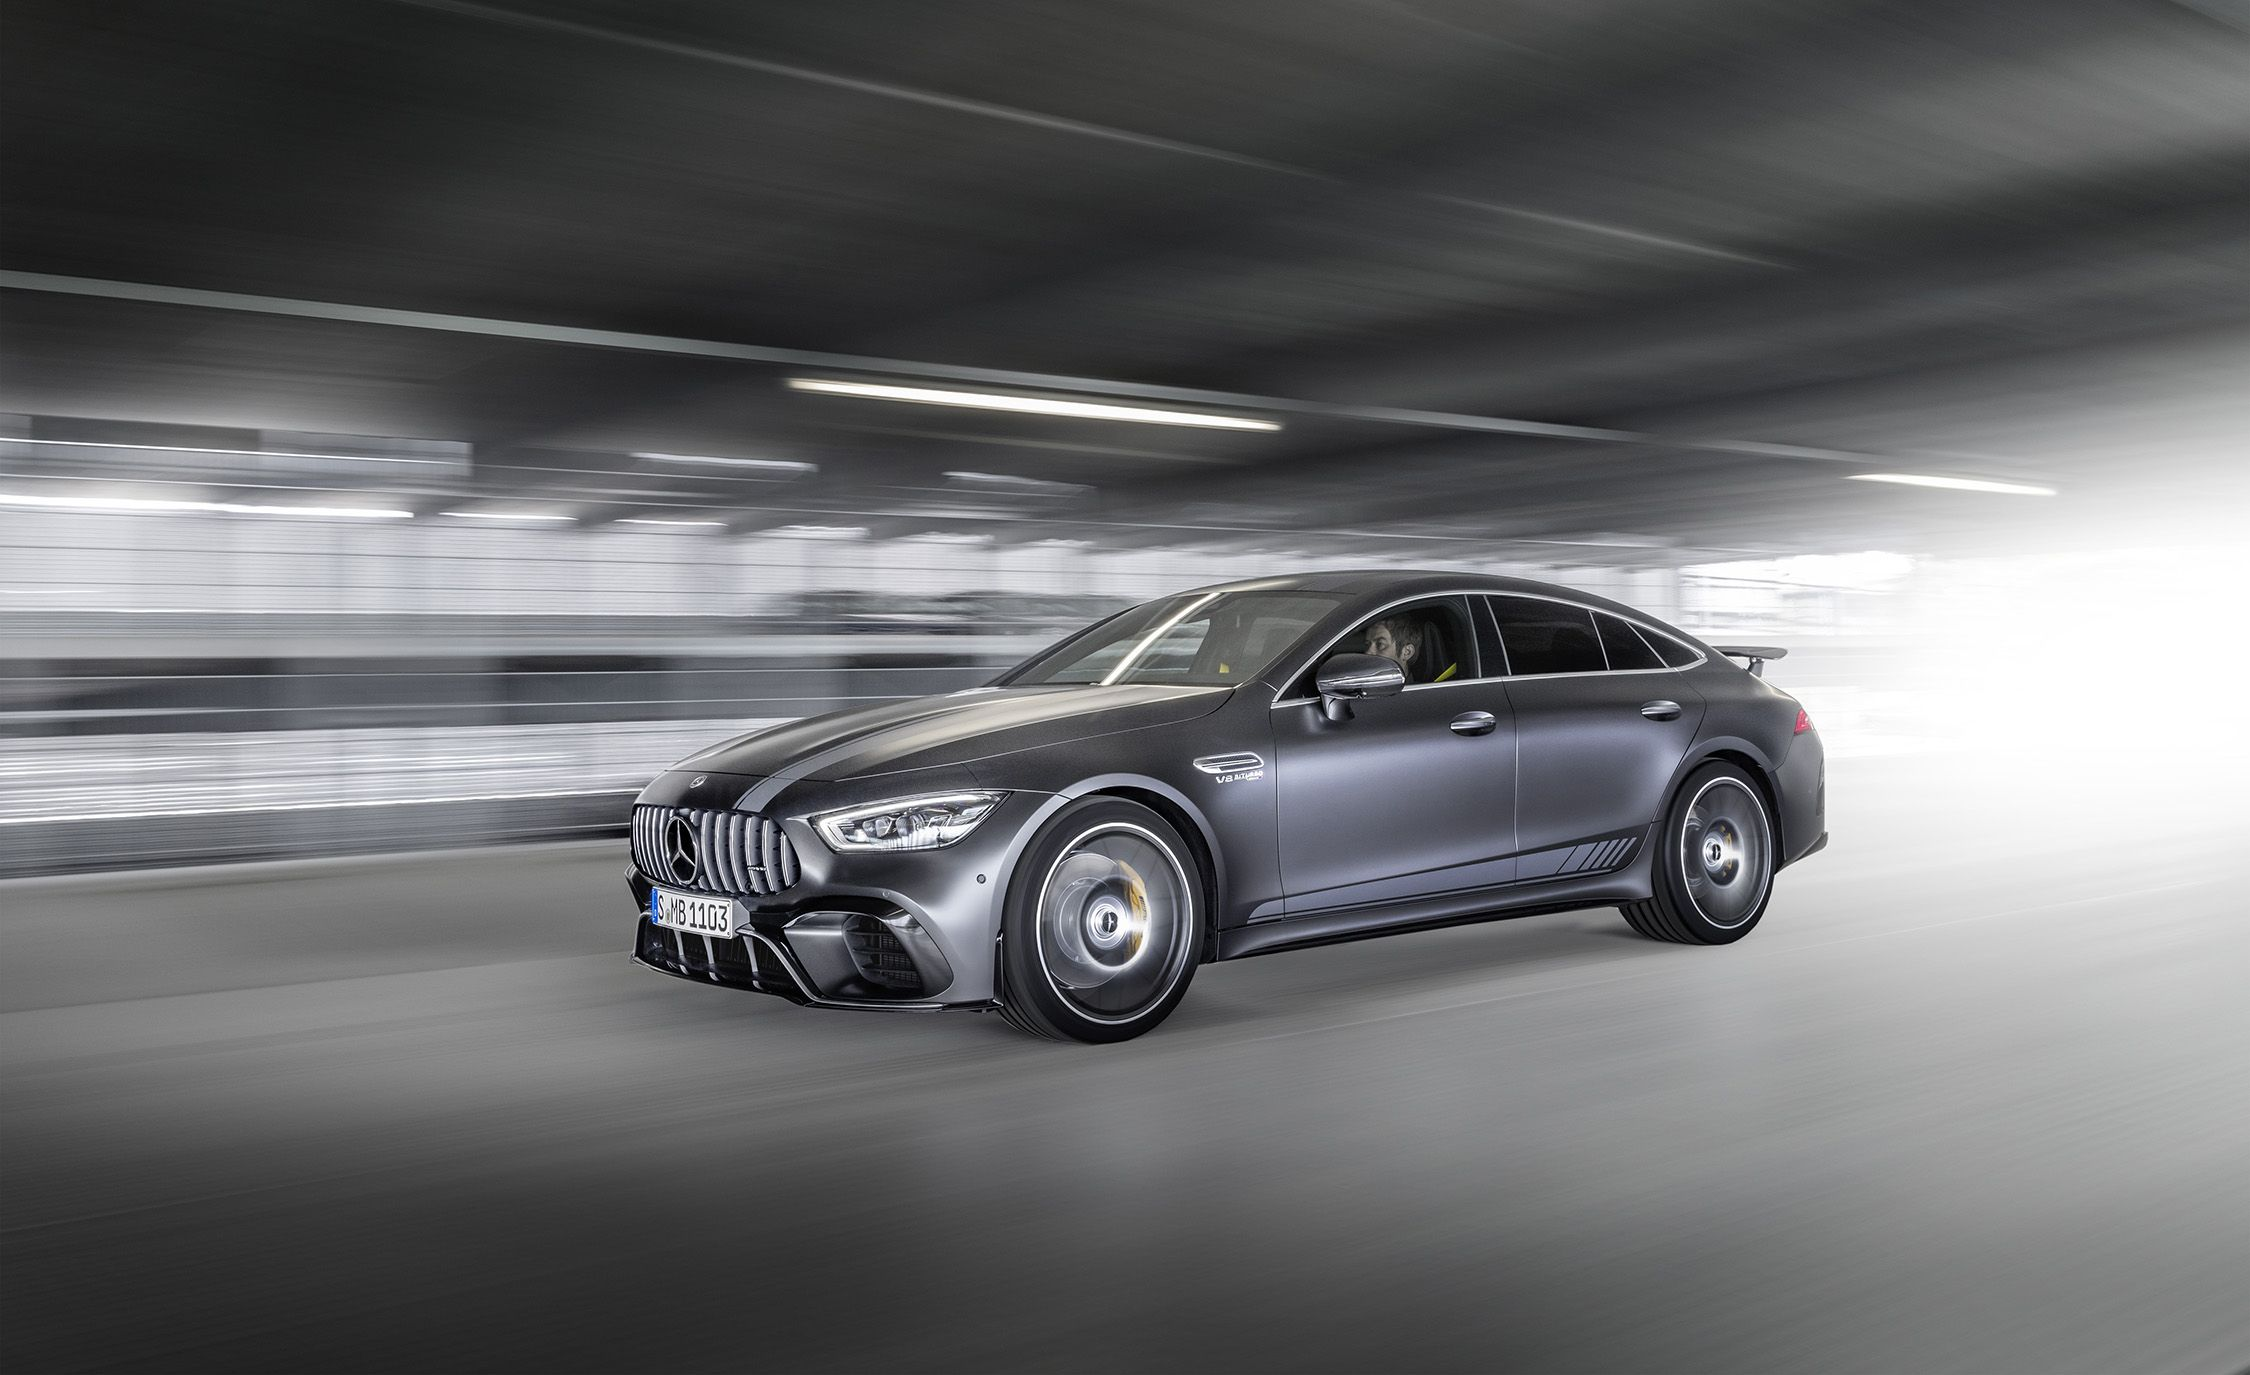 2019 Mercedes-AMG GT63 S 4-Door Launches with Edition 1